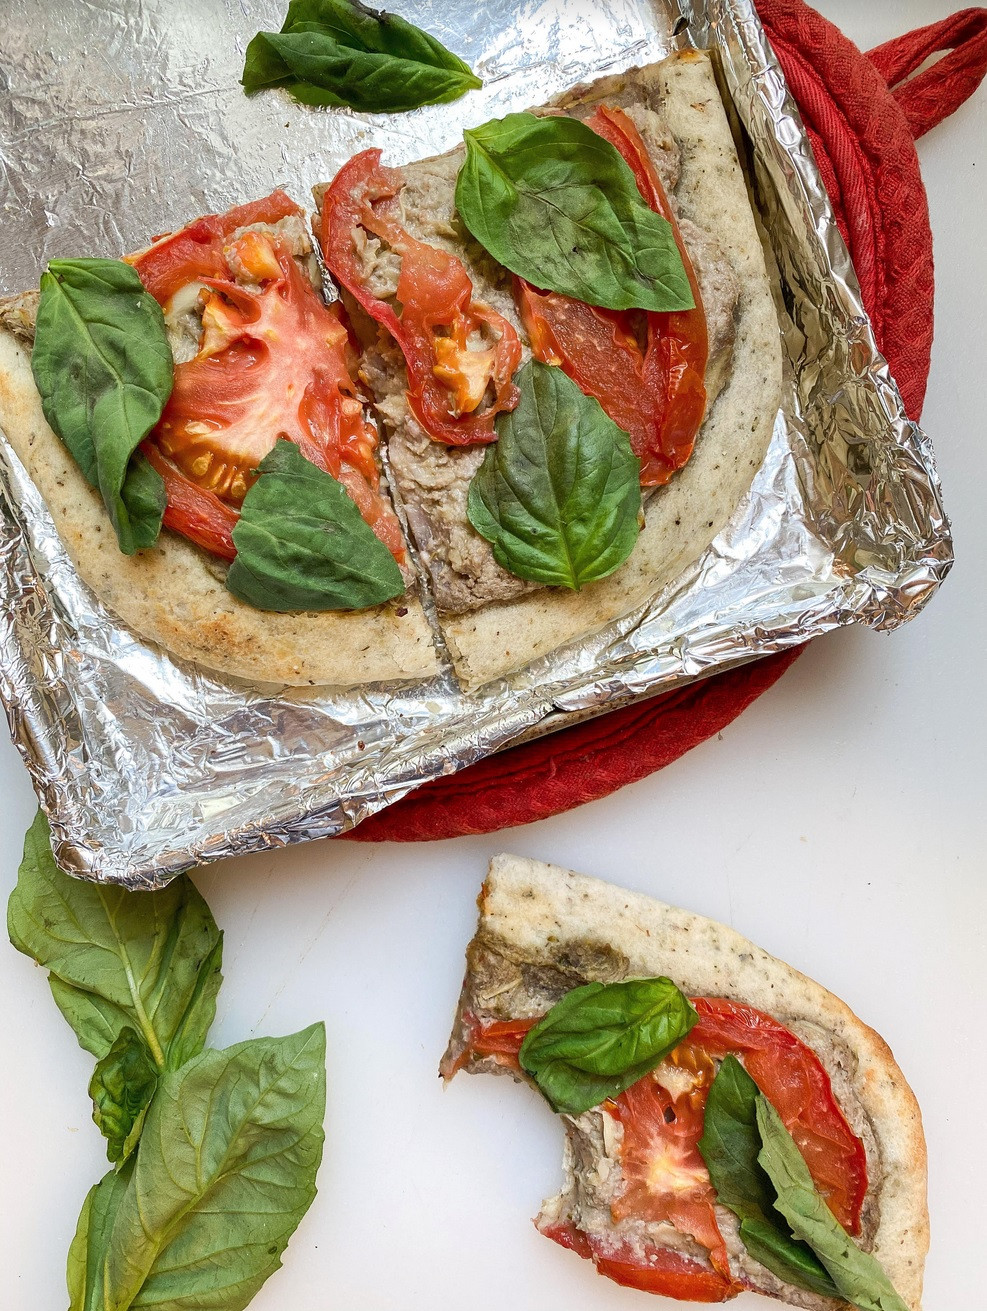 Vegan toaster-oven artichoke pizza, topped with tomato slices and fresh basil